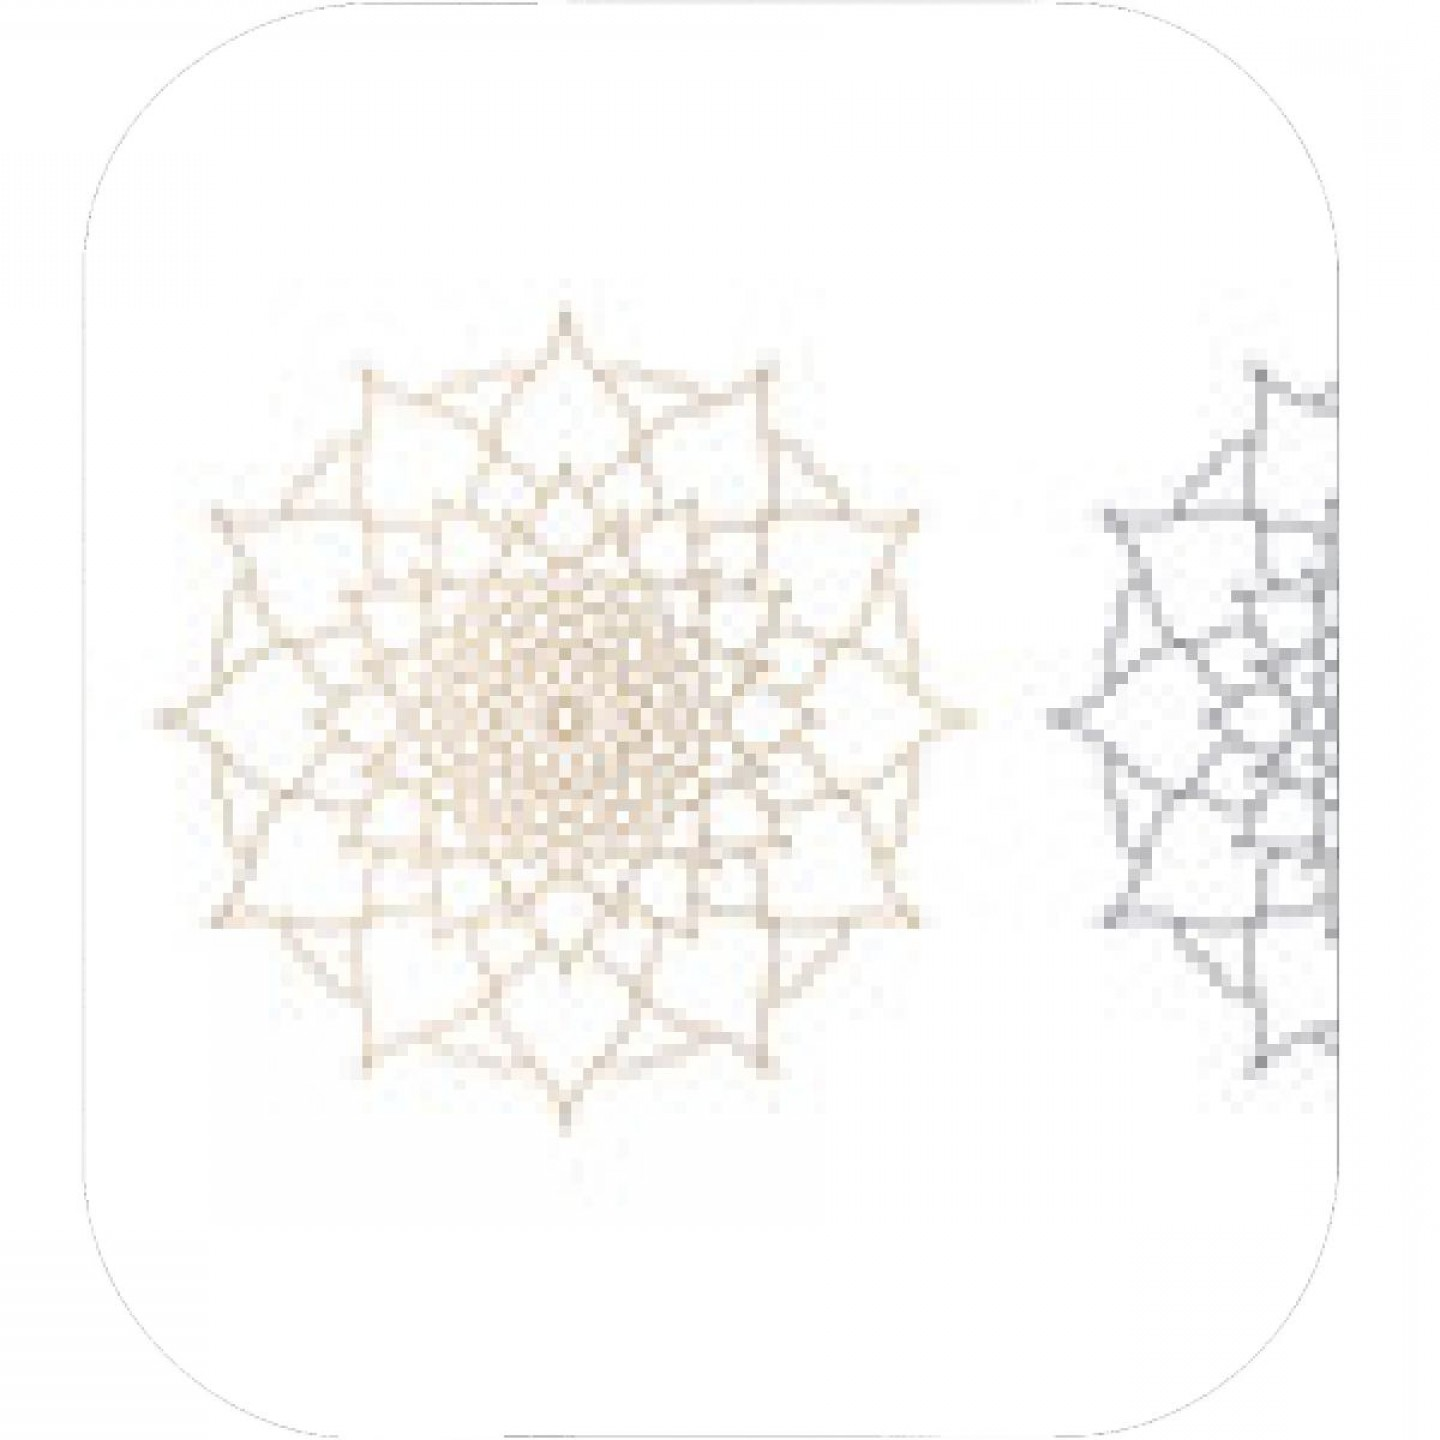 Gold And Blue Flower Vector: Mandala Of Blue And Gold Color Abstraction Of Flower Petals Geometric Patterned Flower Vector Illustration On White Background